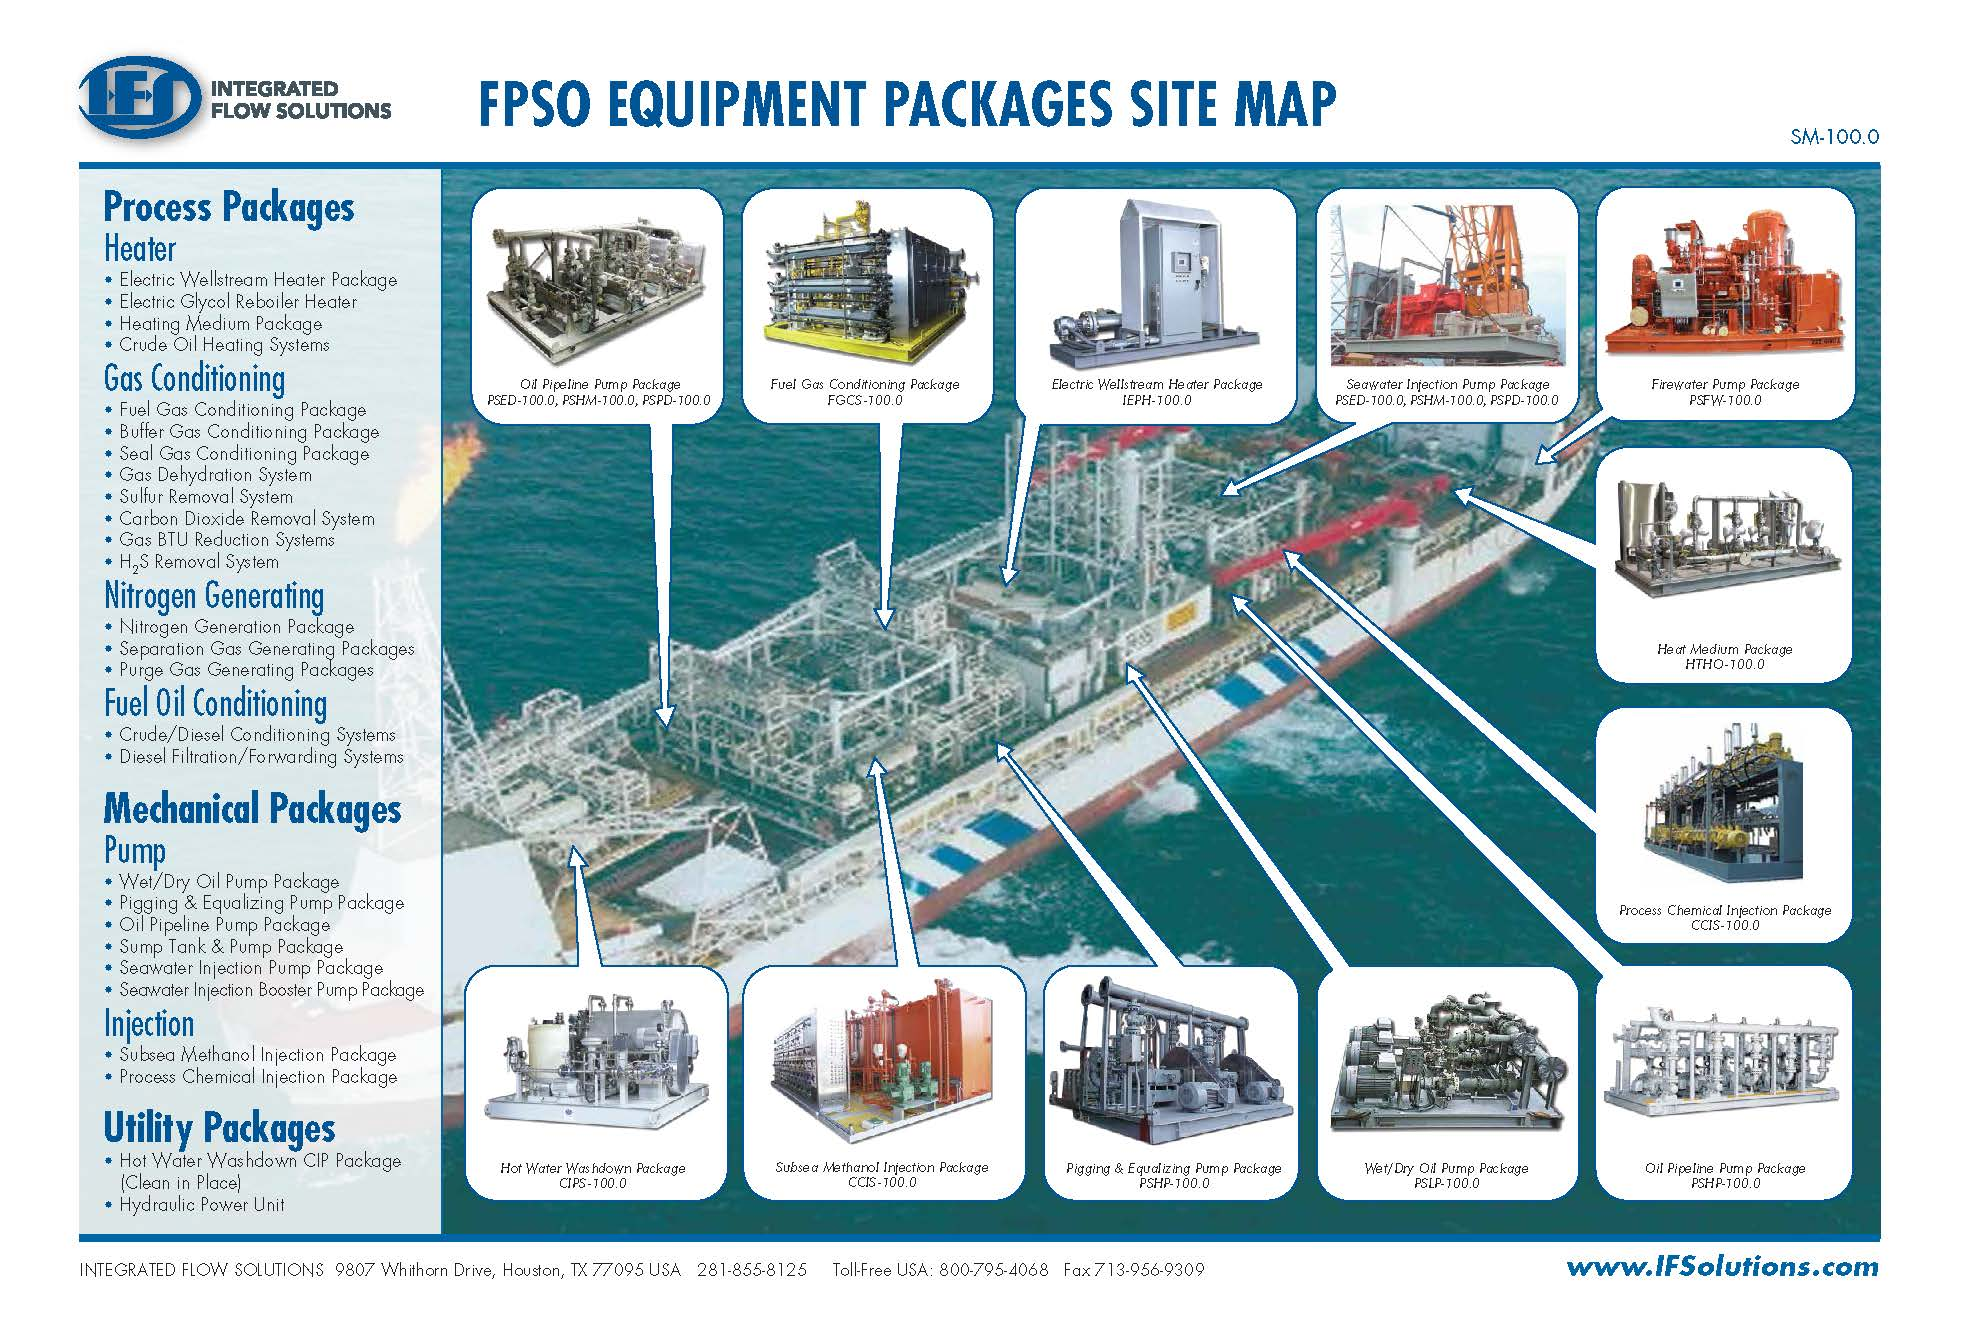 Where on an FPSO Do You Find IFS Equipment Packages? - Integrated ...